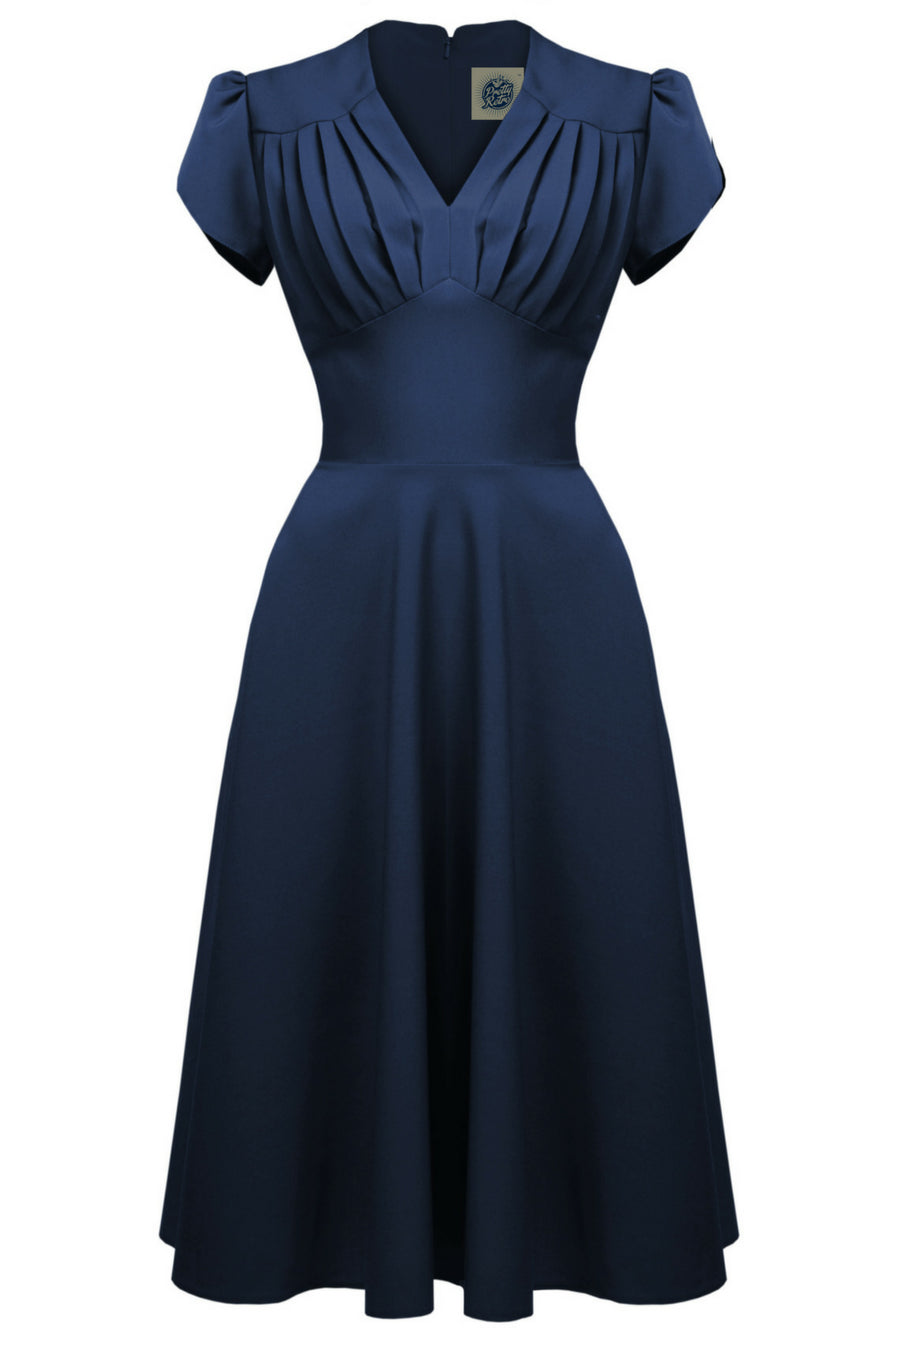 1940s swing Dress in Navy